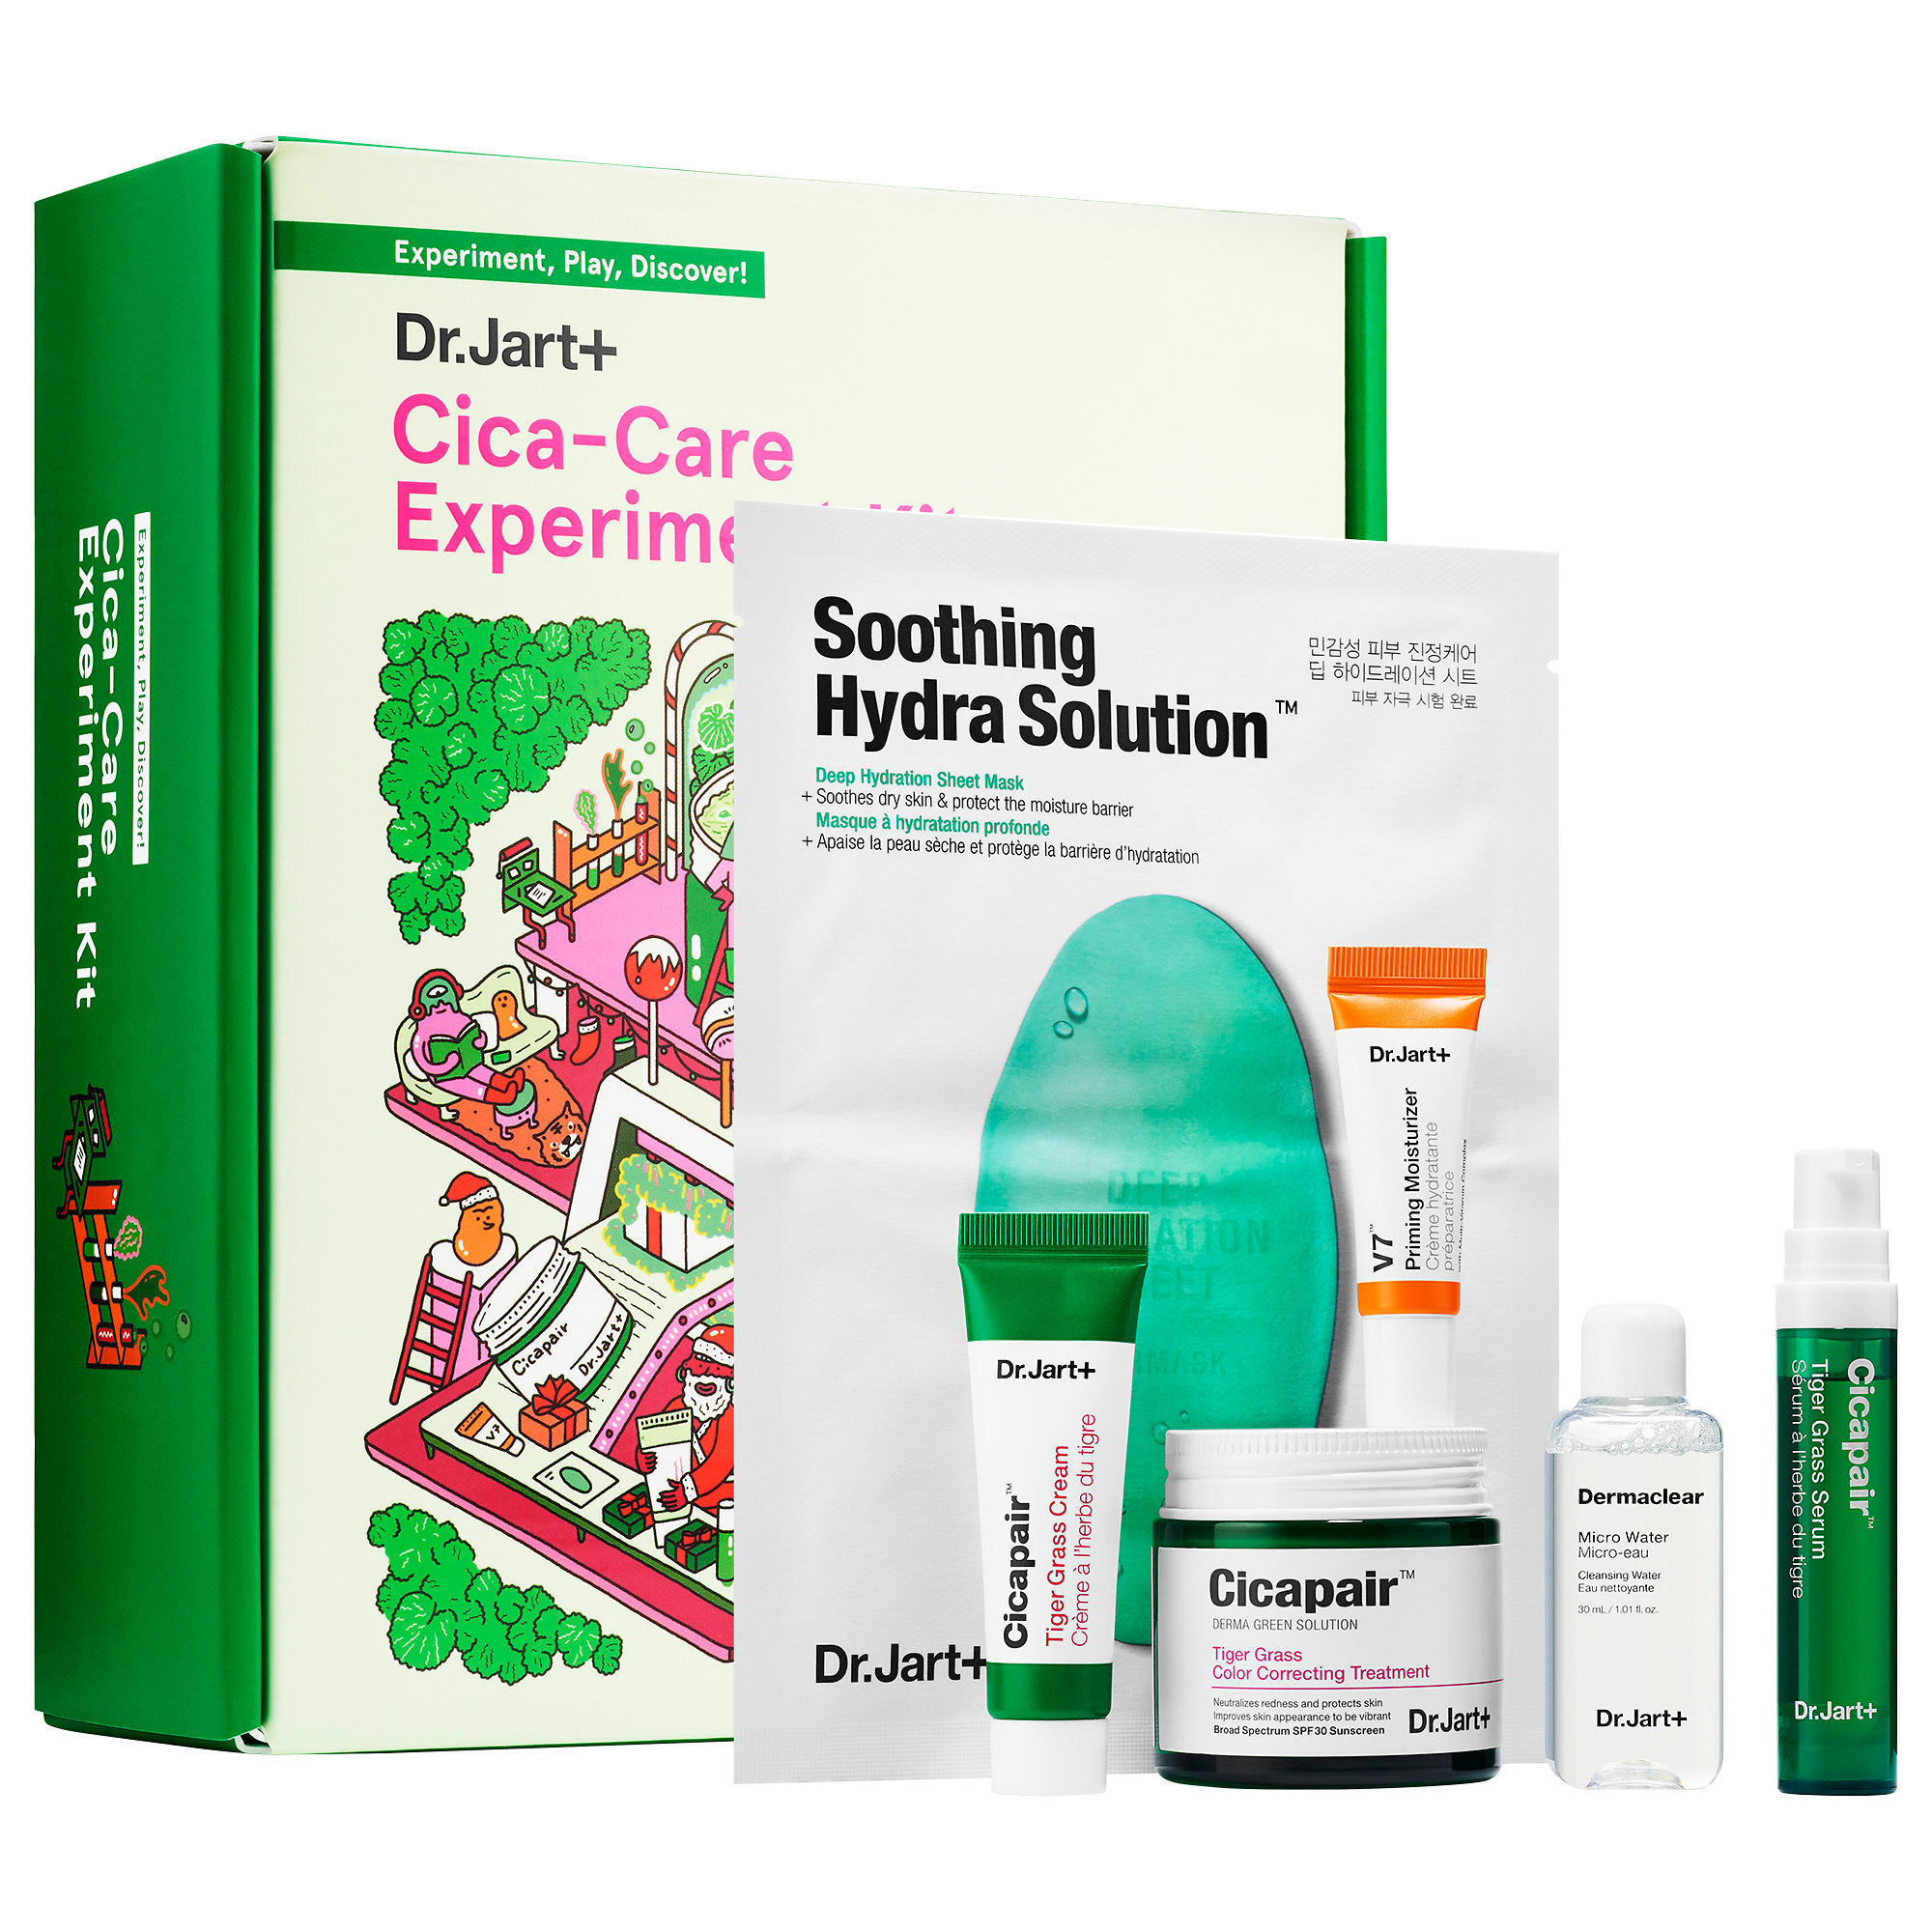 Dr. Jart Cica-Care Experiment Kit